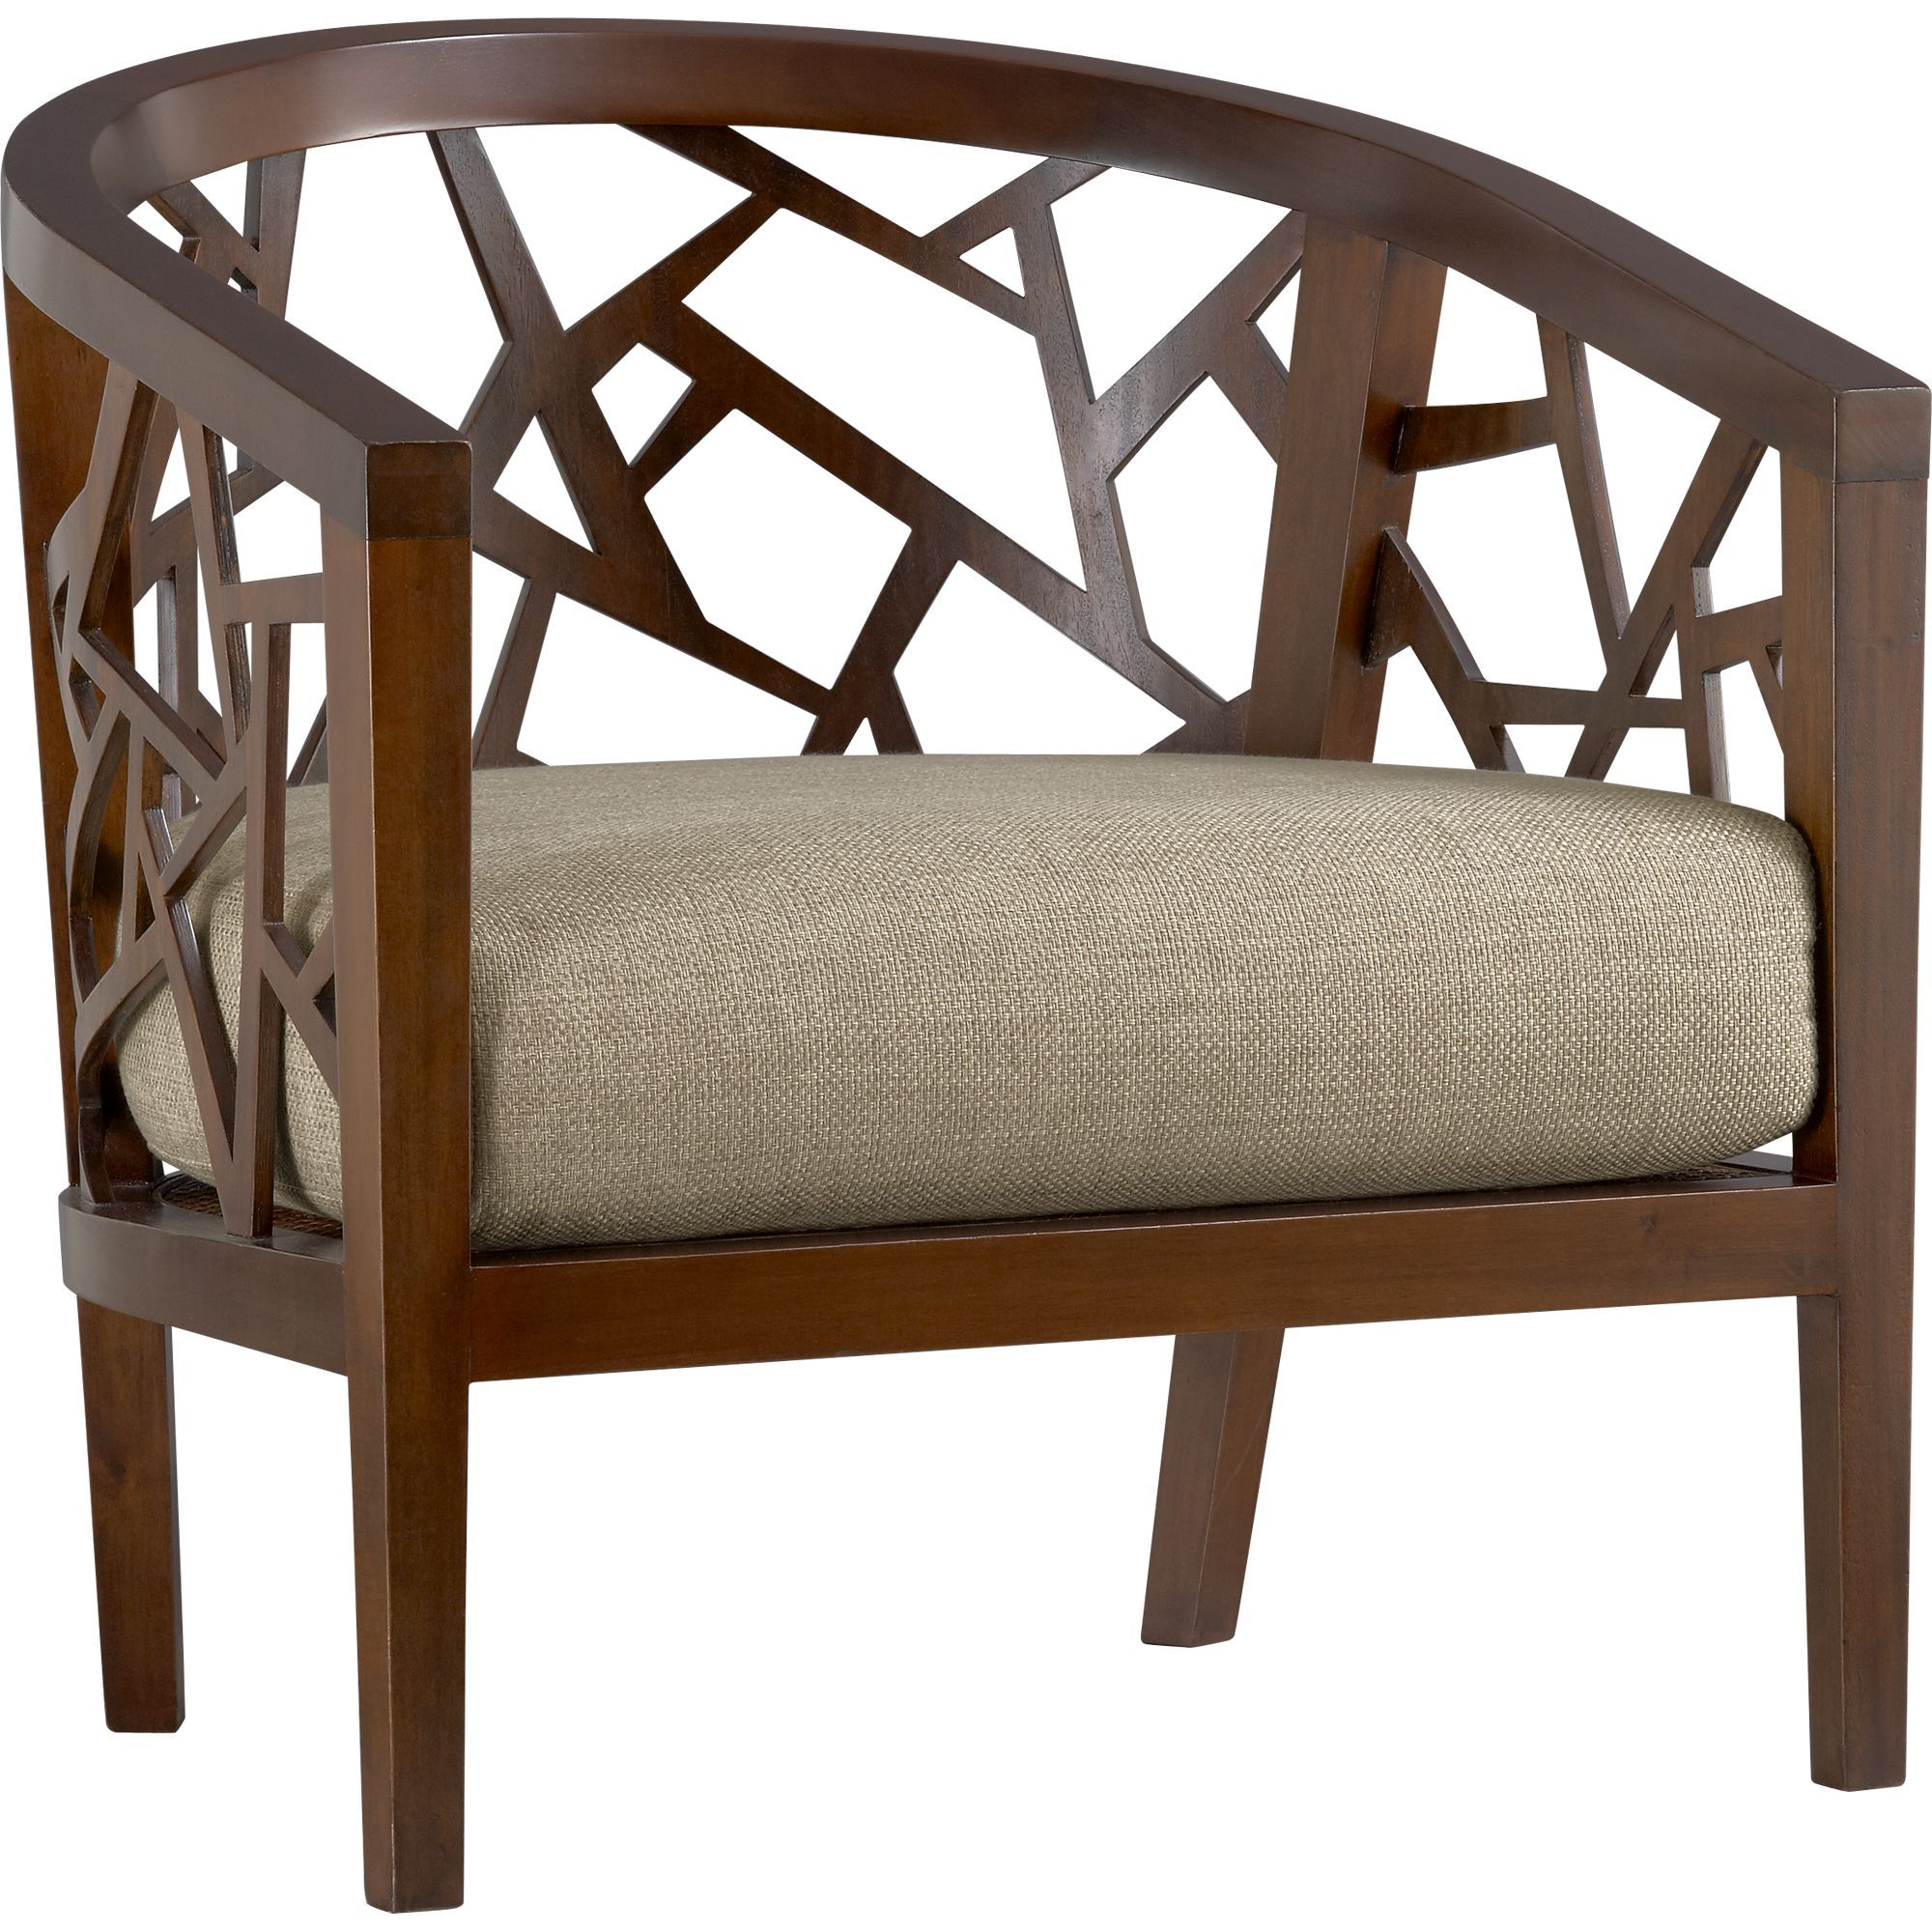 Ankara Chair With Cushion In Chairs Crate And Barrel Furniture